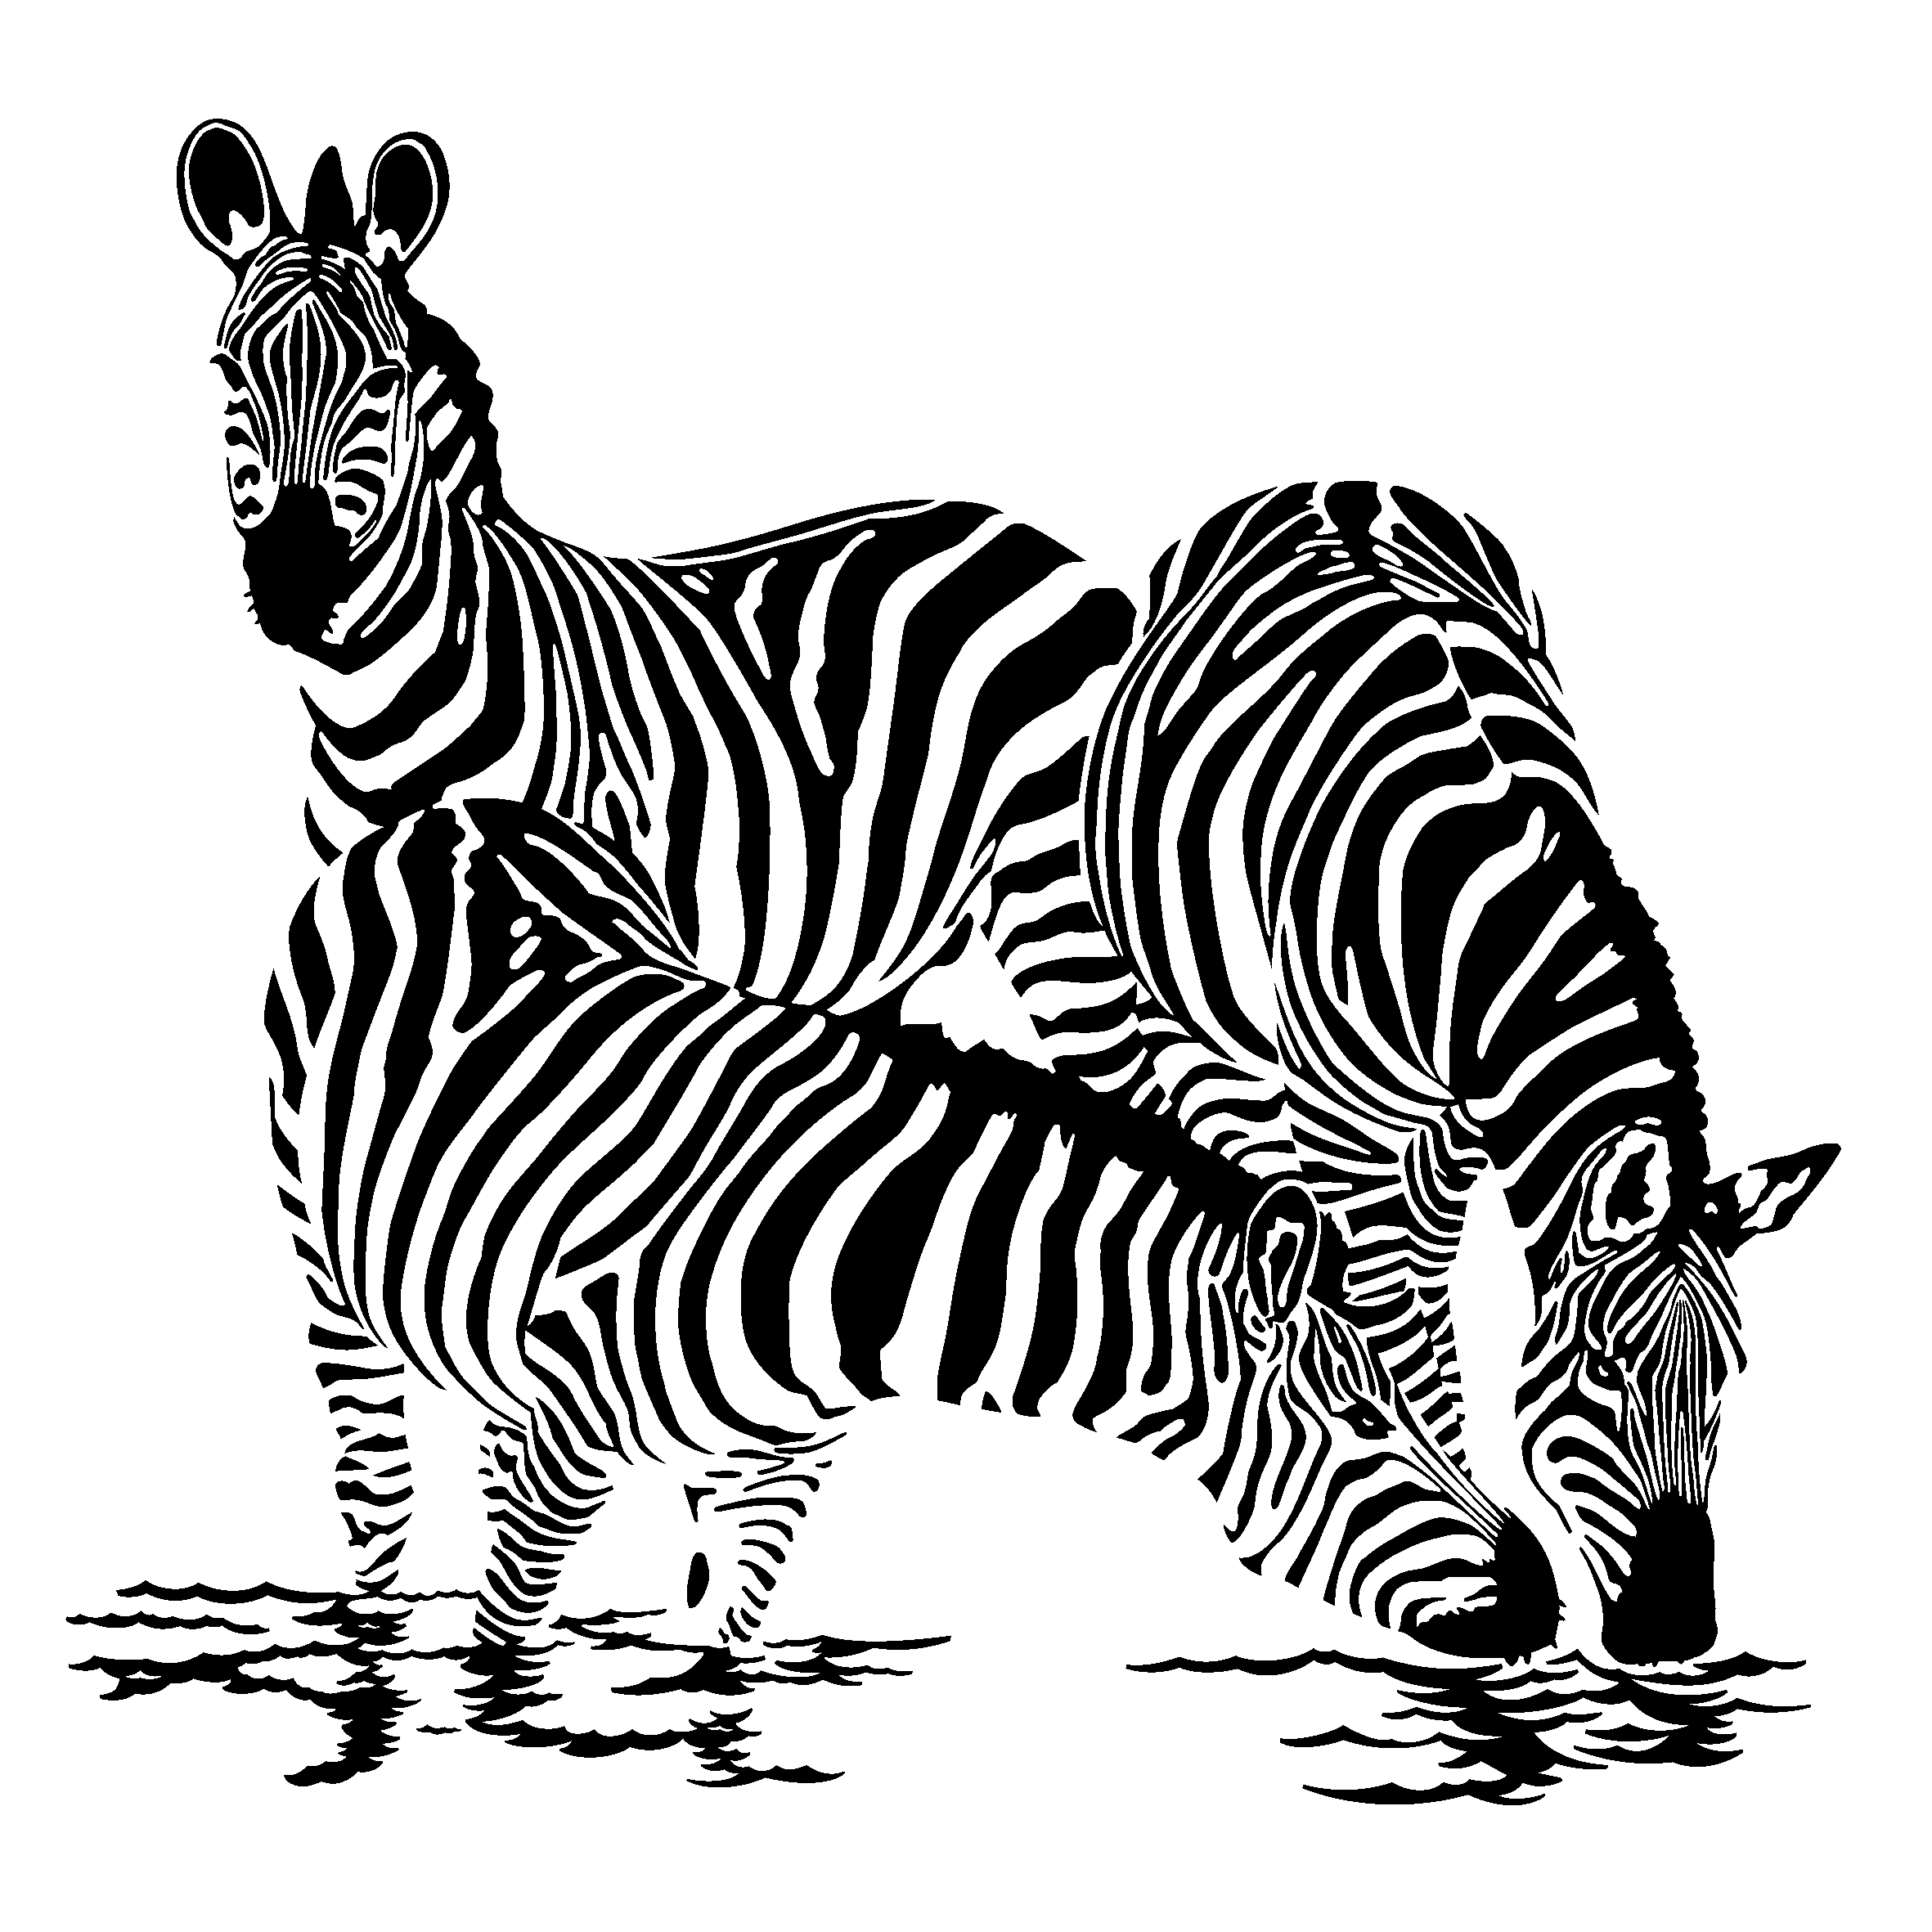 zebra coloring images zebra coloring pages download and print zebra coloring pages coloring zebra images